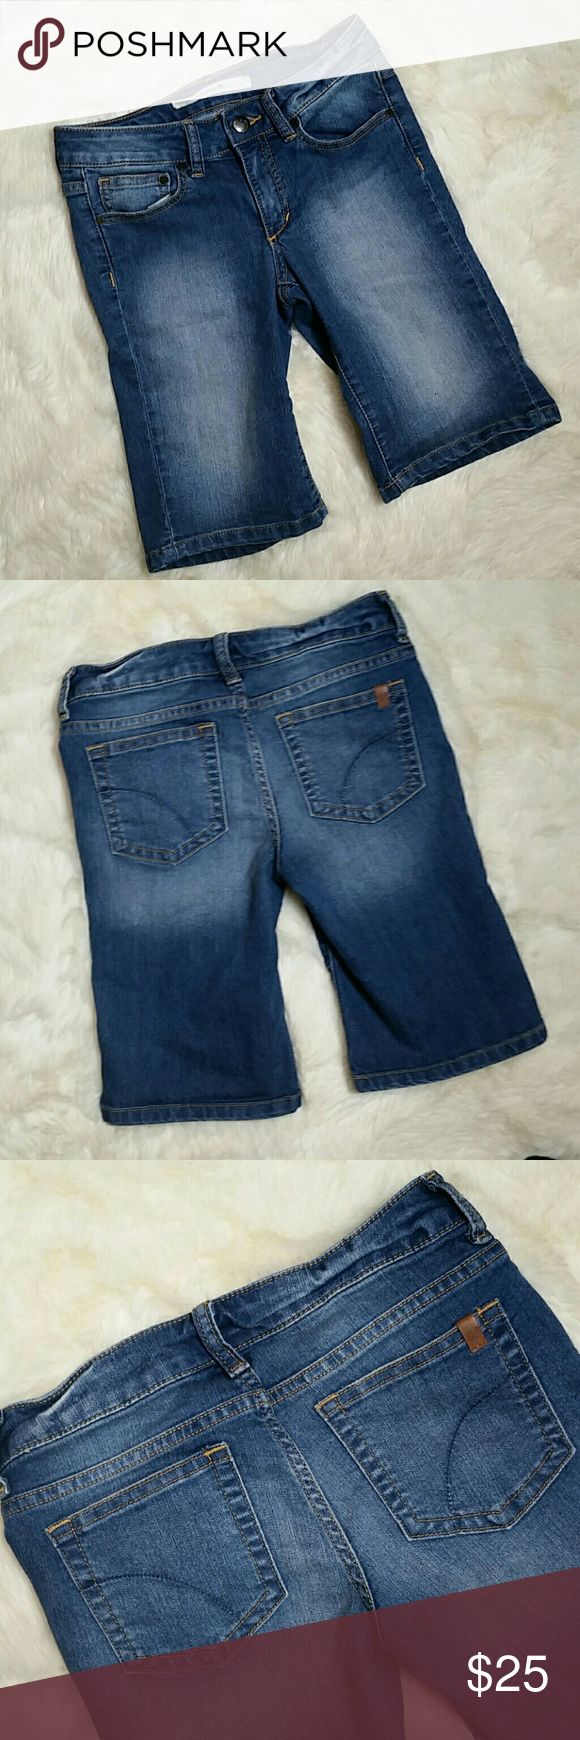 "Girls Joes Jeans Bermuda Shorts Size 12 Girls Joes Jeans Bermuda Shorts, size 12. Medium blue wash.  Button and zip fly. Stretch denim made up of 77% cotton, 22% polyester and 1% spandex. Preowned in great condition with no rips, holes, tears or stains. Size 12 (girls)  Waist 13"" Rise 7"" Inseam 10"" Leg Opening 7.5"" Full length top to bottom 16.5"" Joe's Jeans Bottoms Shorts"